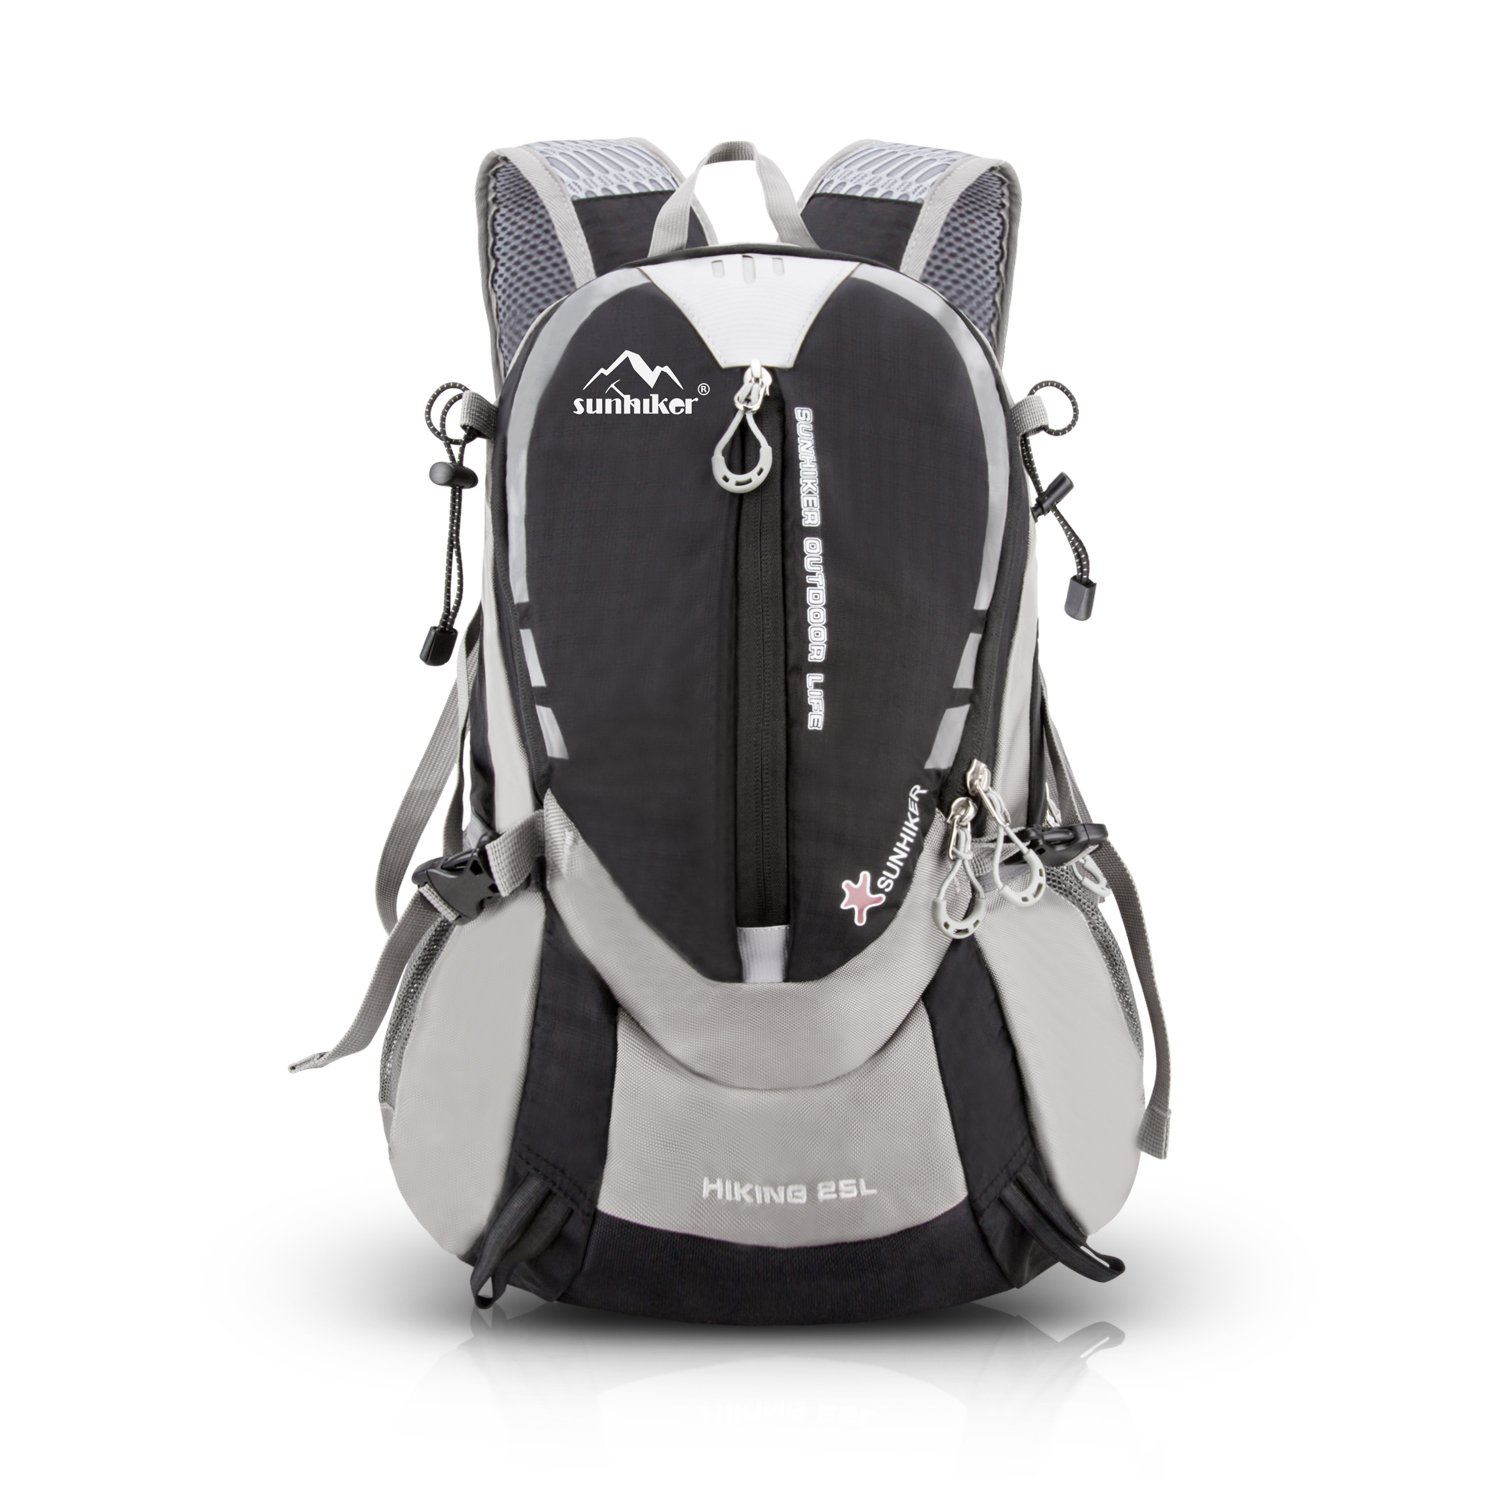 Amazon.com : Hiking Cycling Backpack, Sunhiker Sports Outdoor ...